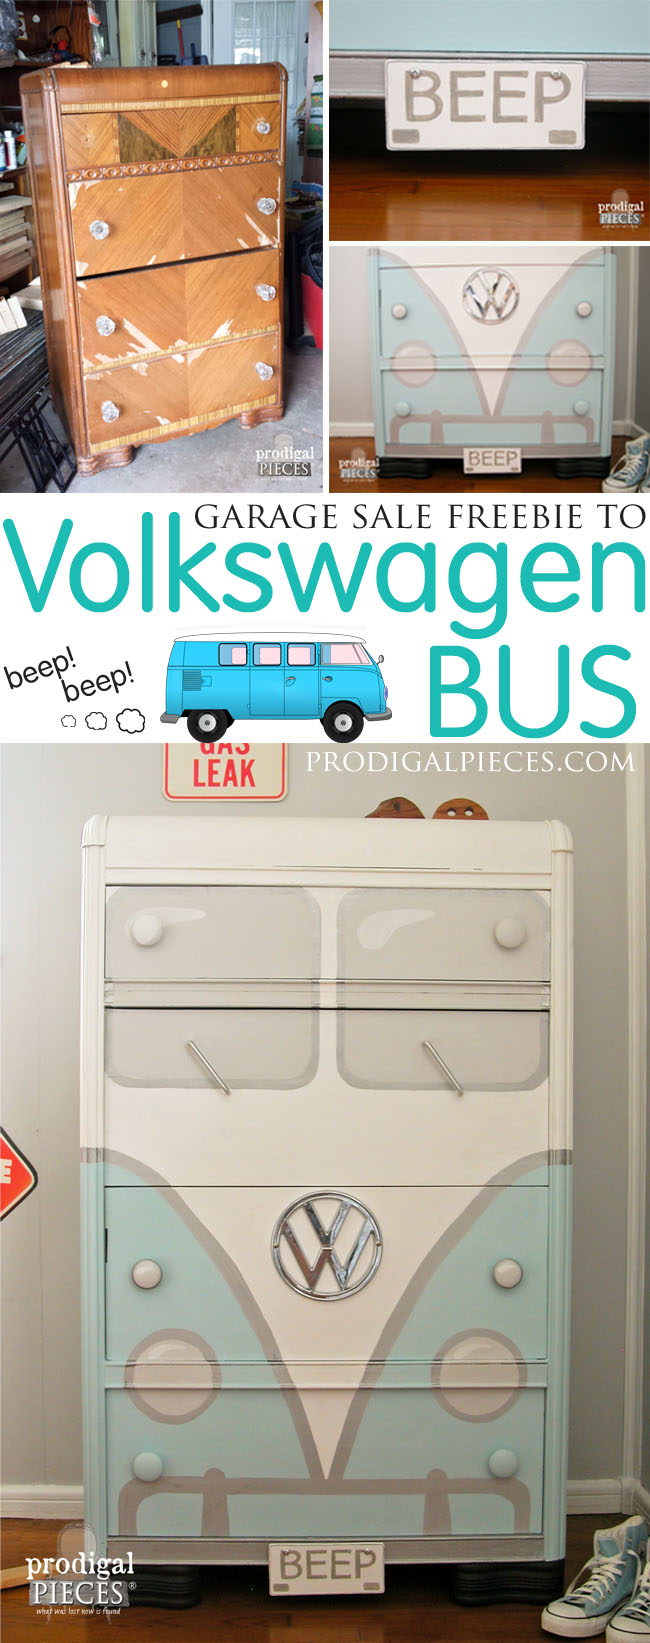 Vintage Waterfall Dresser Gets Volkswagen Bus Makeover by Prodigal Pieces | www.prodigalpieces.com